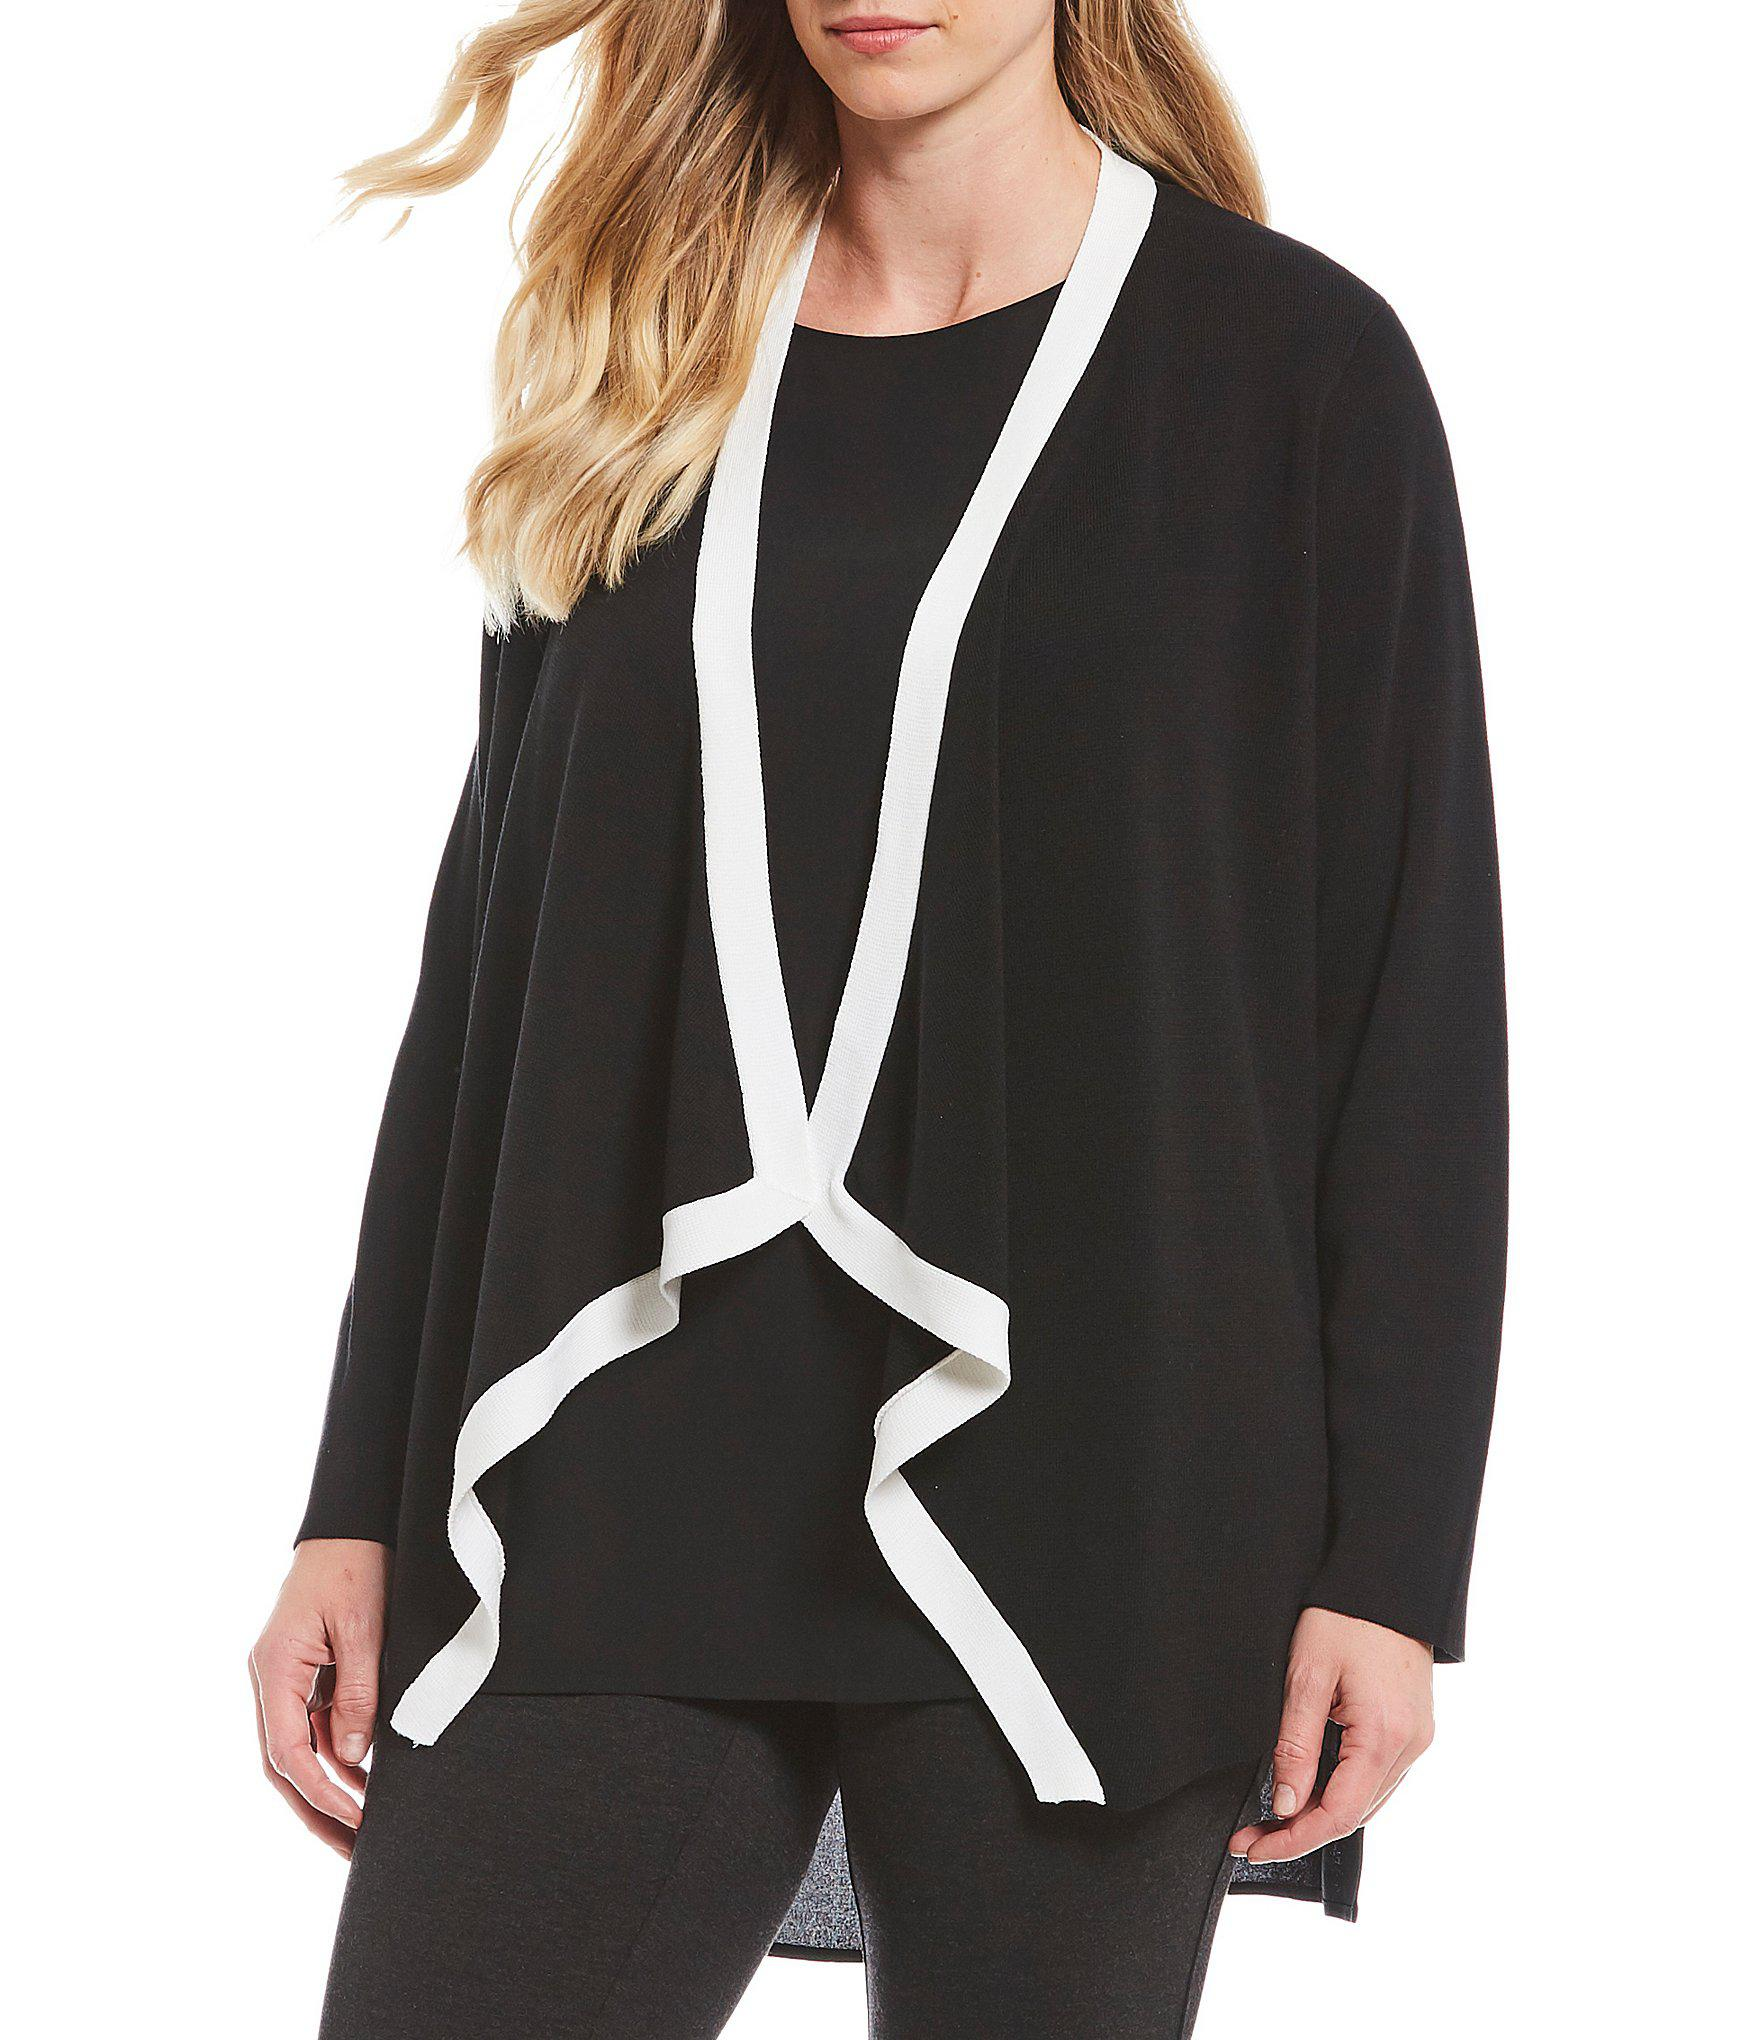 882d93eef40 Lyst - Eileen Fisher Plus Size Angled Front Jacket in Black